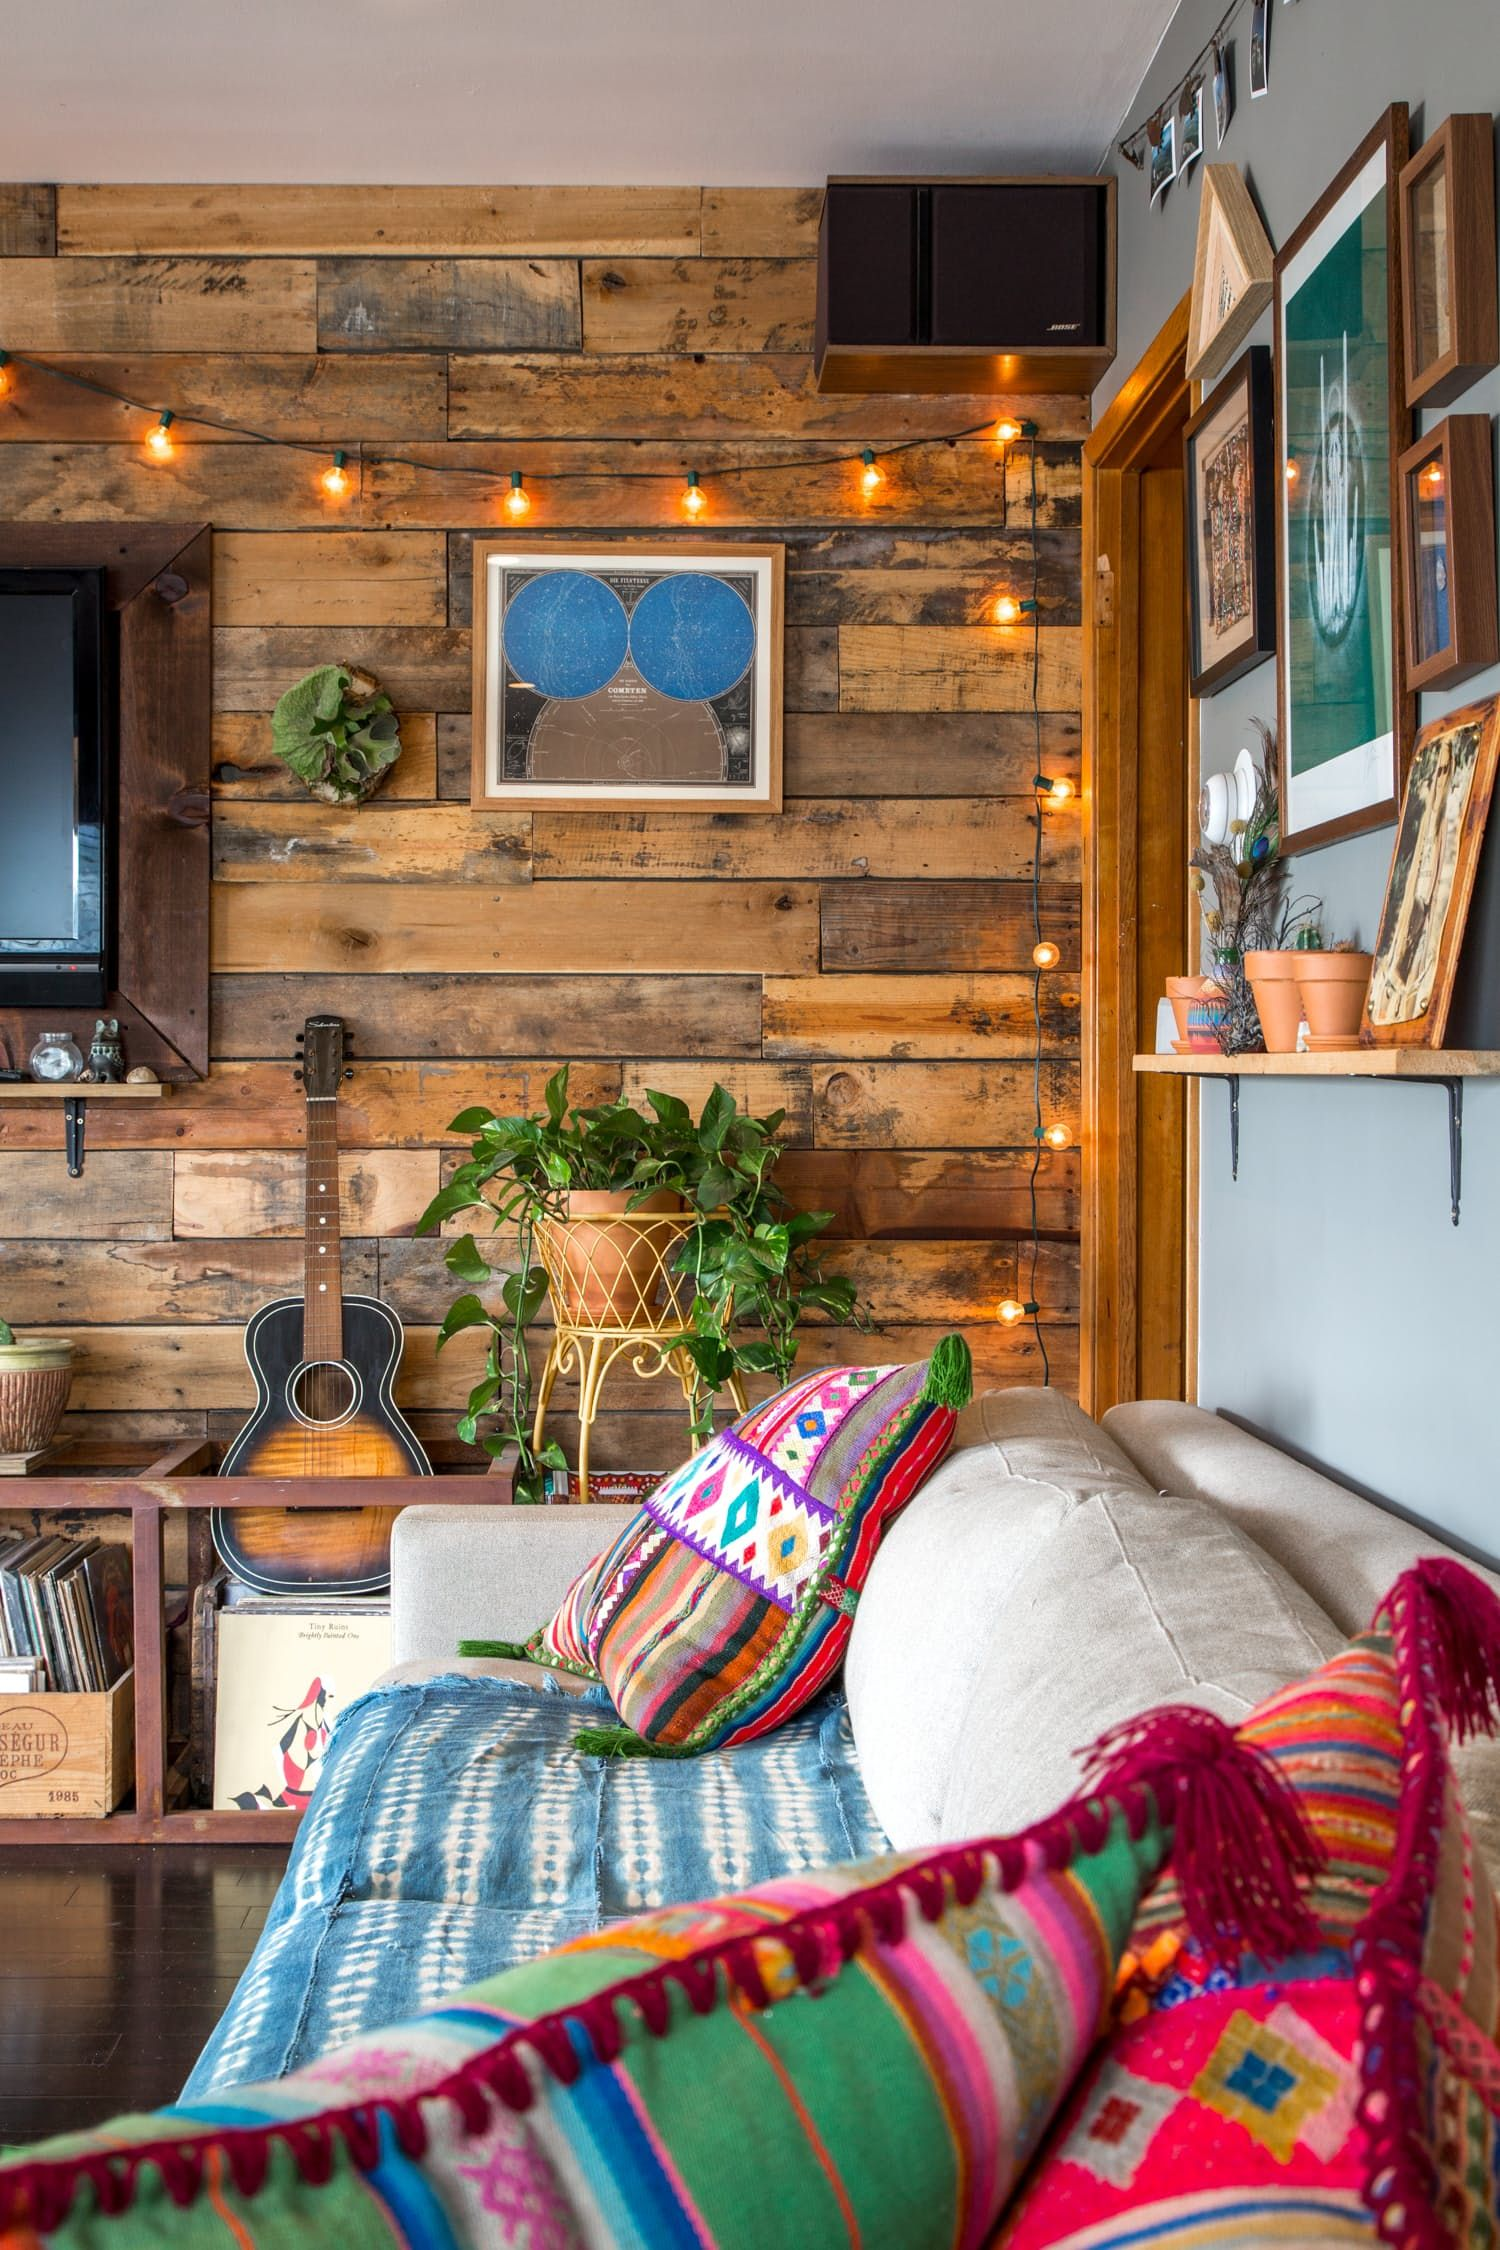 Instantly Cozier 9 Ways To Warm Up Your Winter Lighting Retro Home Decor Rustic House Home